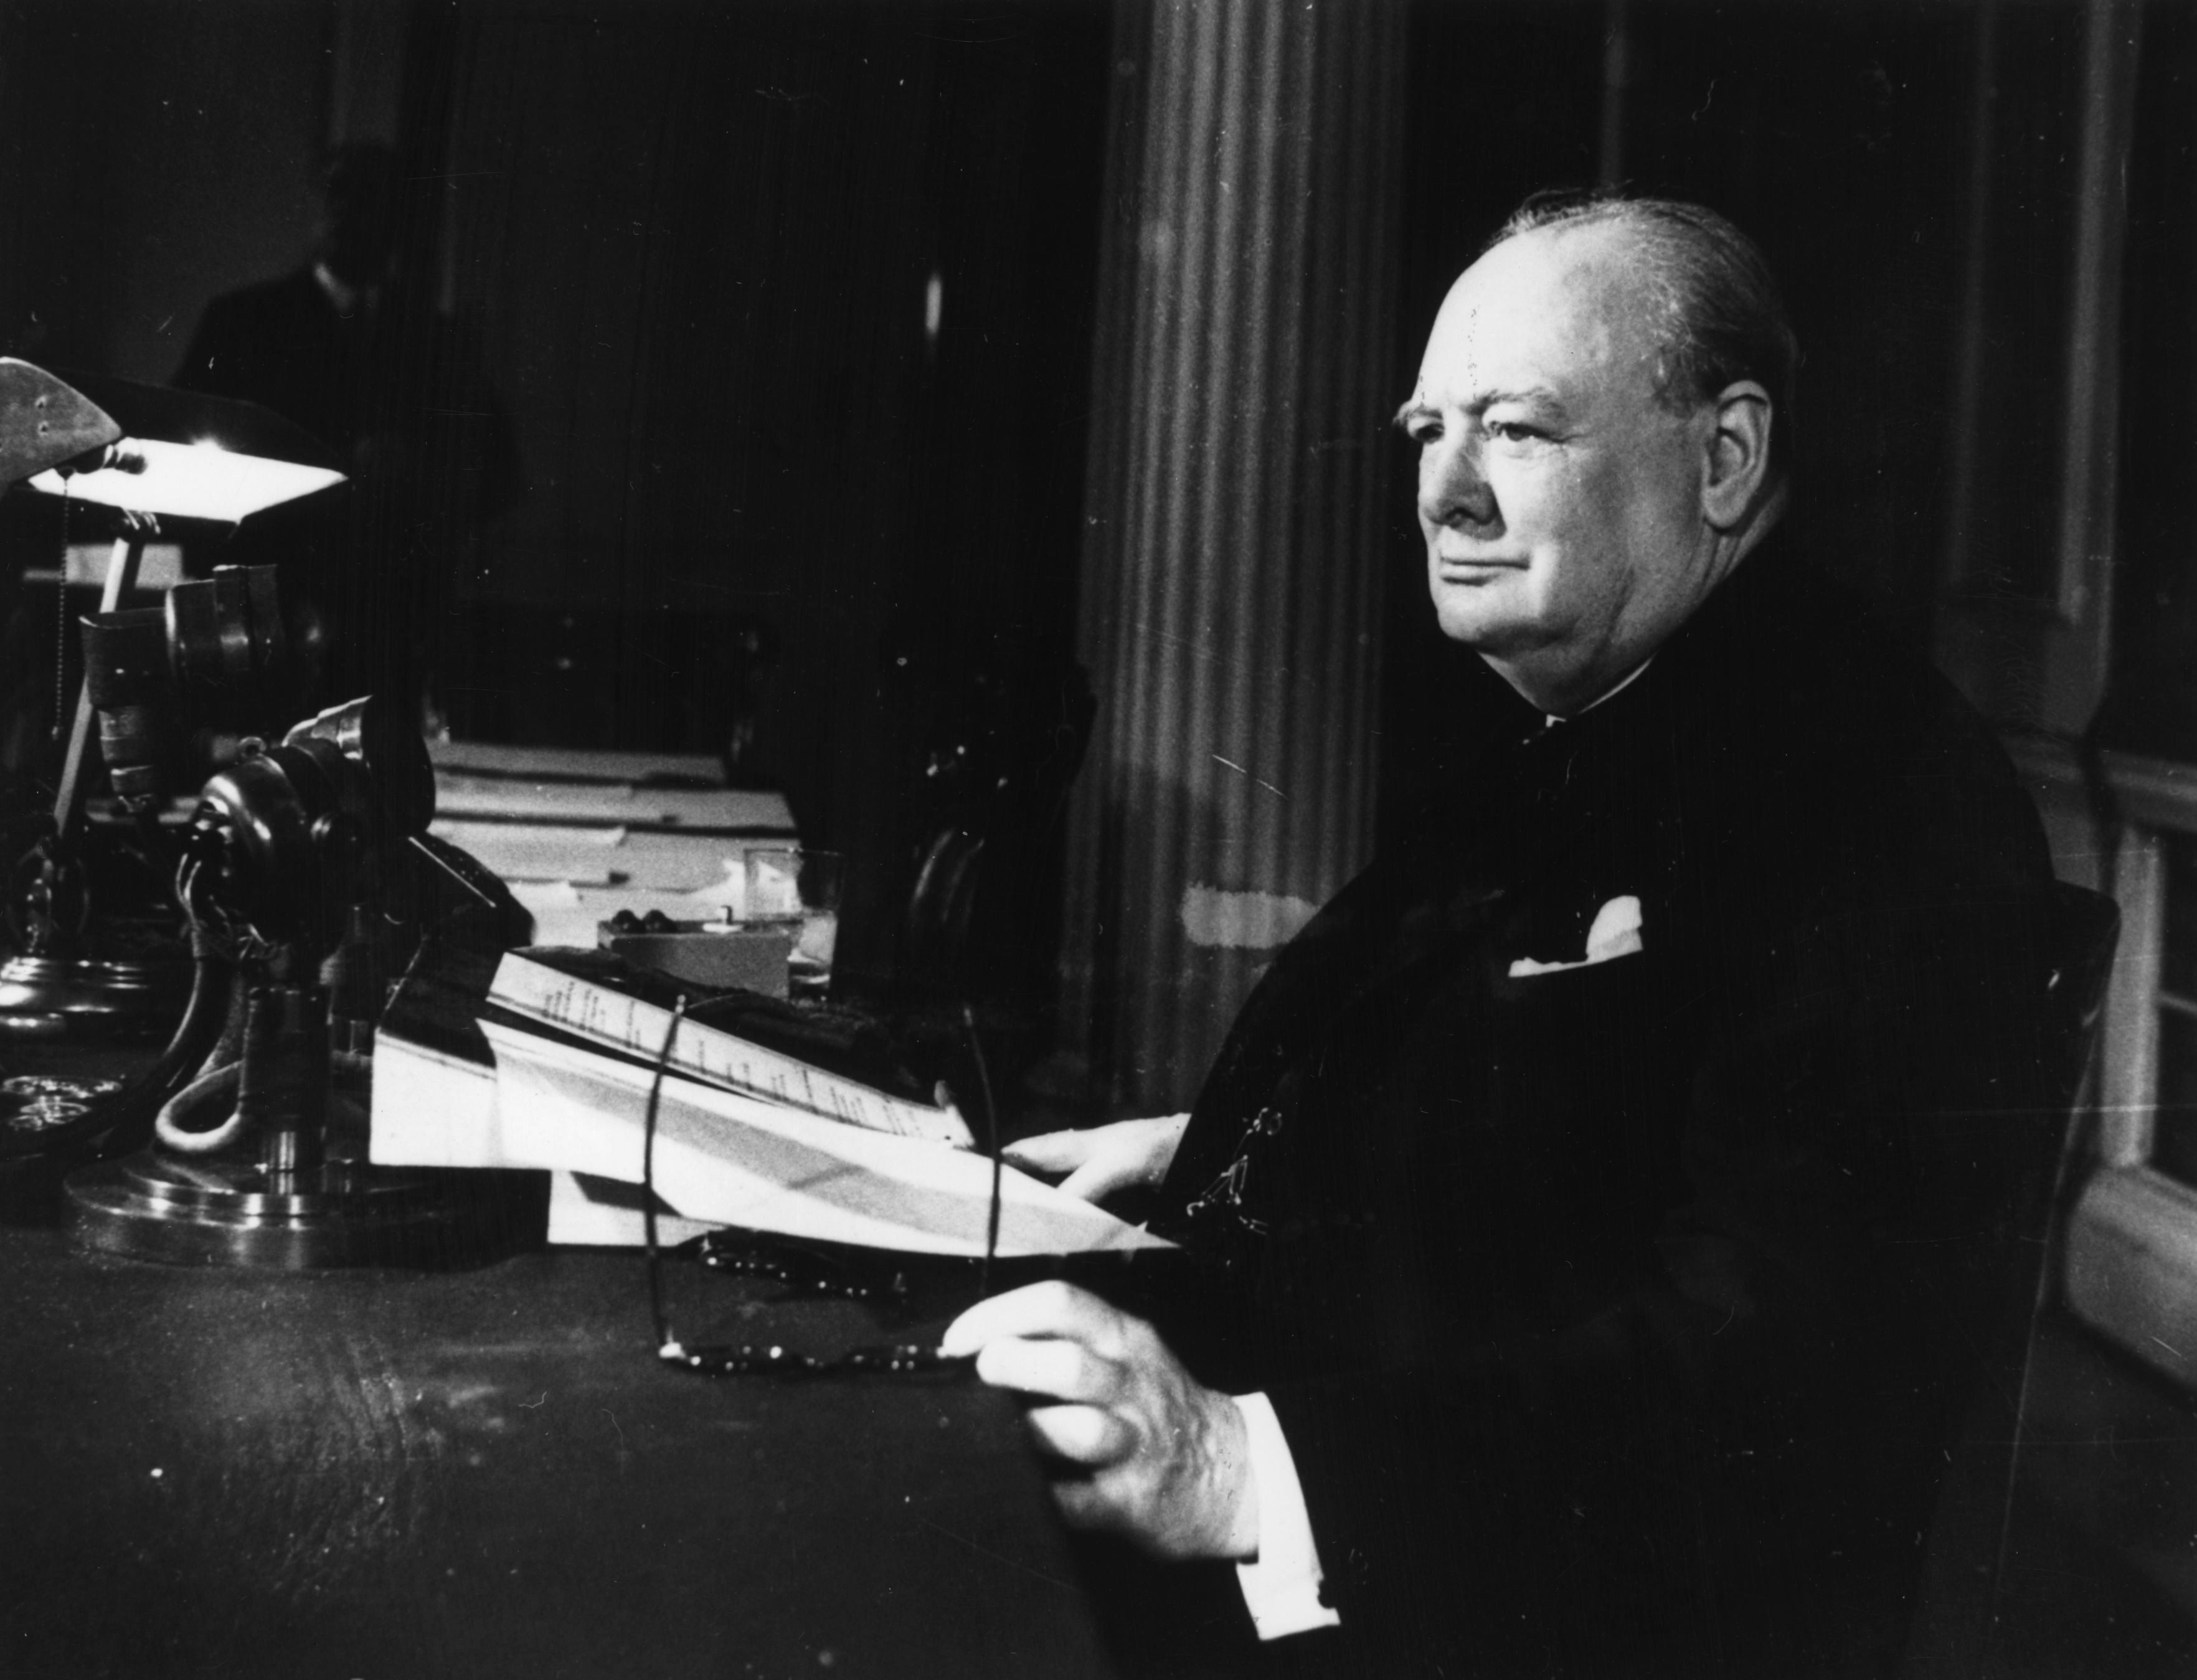 A Biography of Winston Churchill, a British Prime Minister